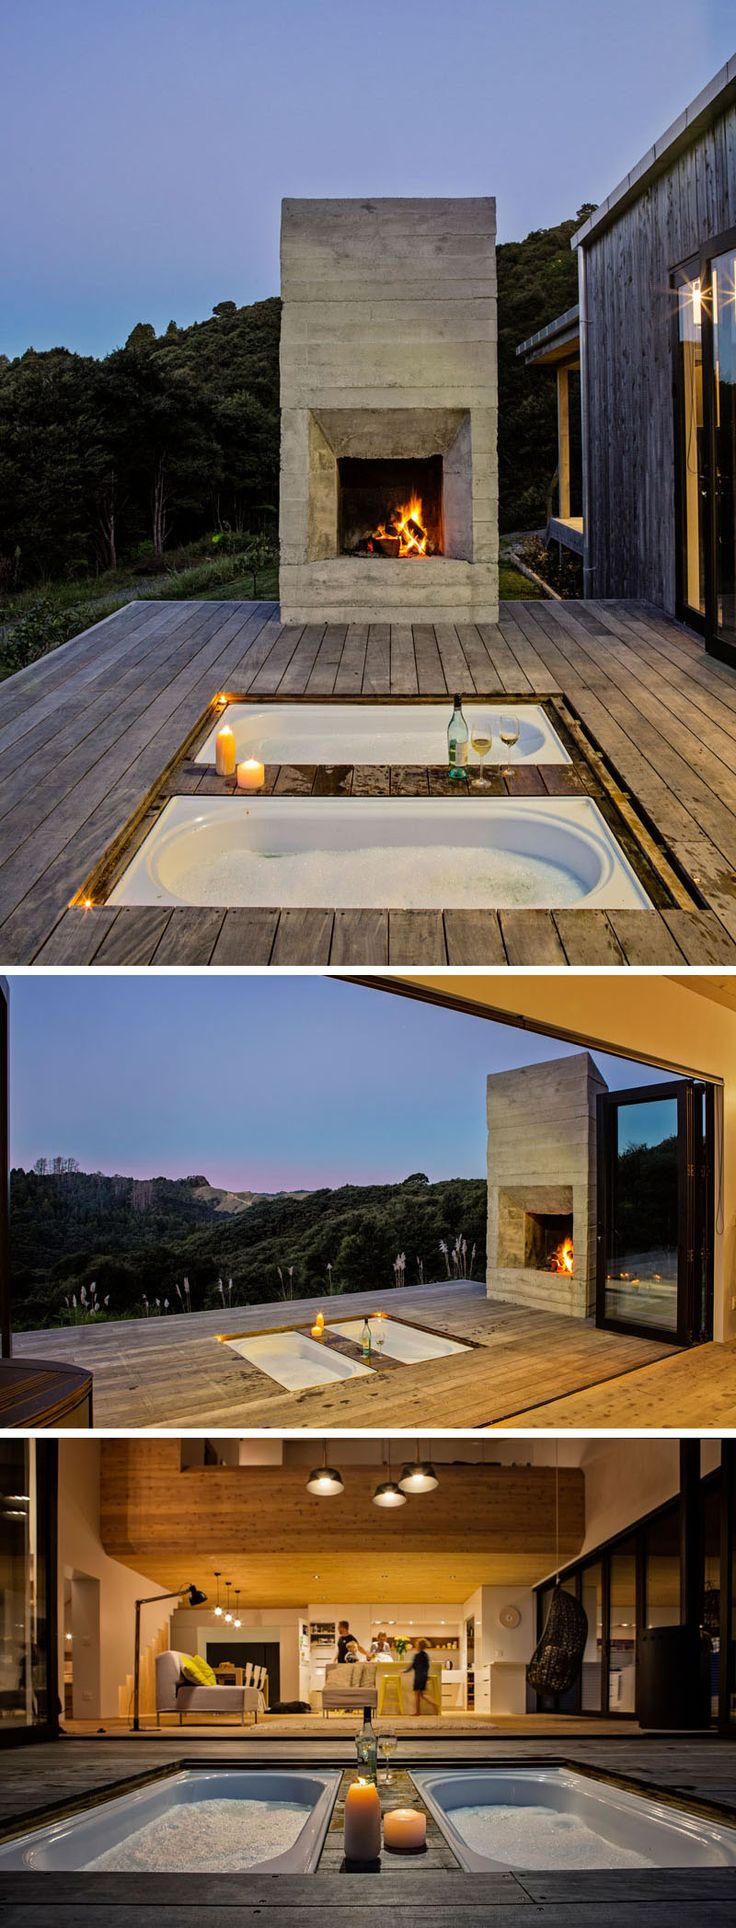 This modern house has an outdoor deck with a board-formed concrete fireplace and sunken bathtubs.